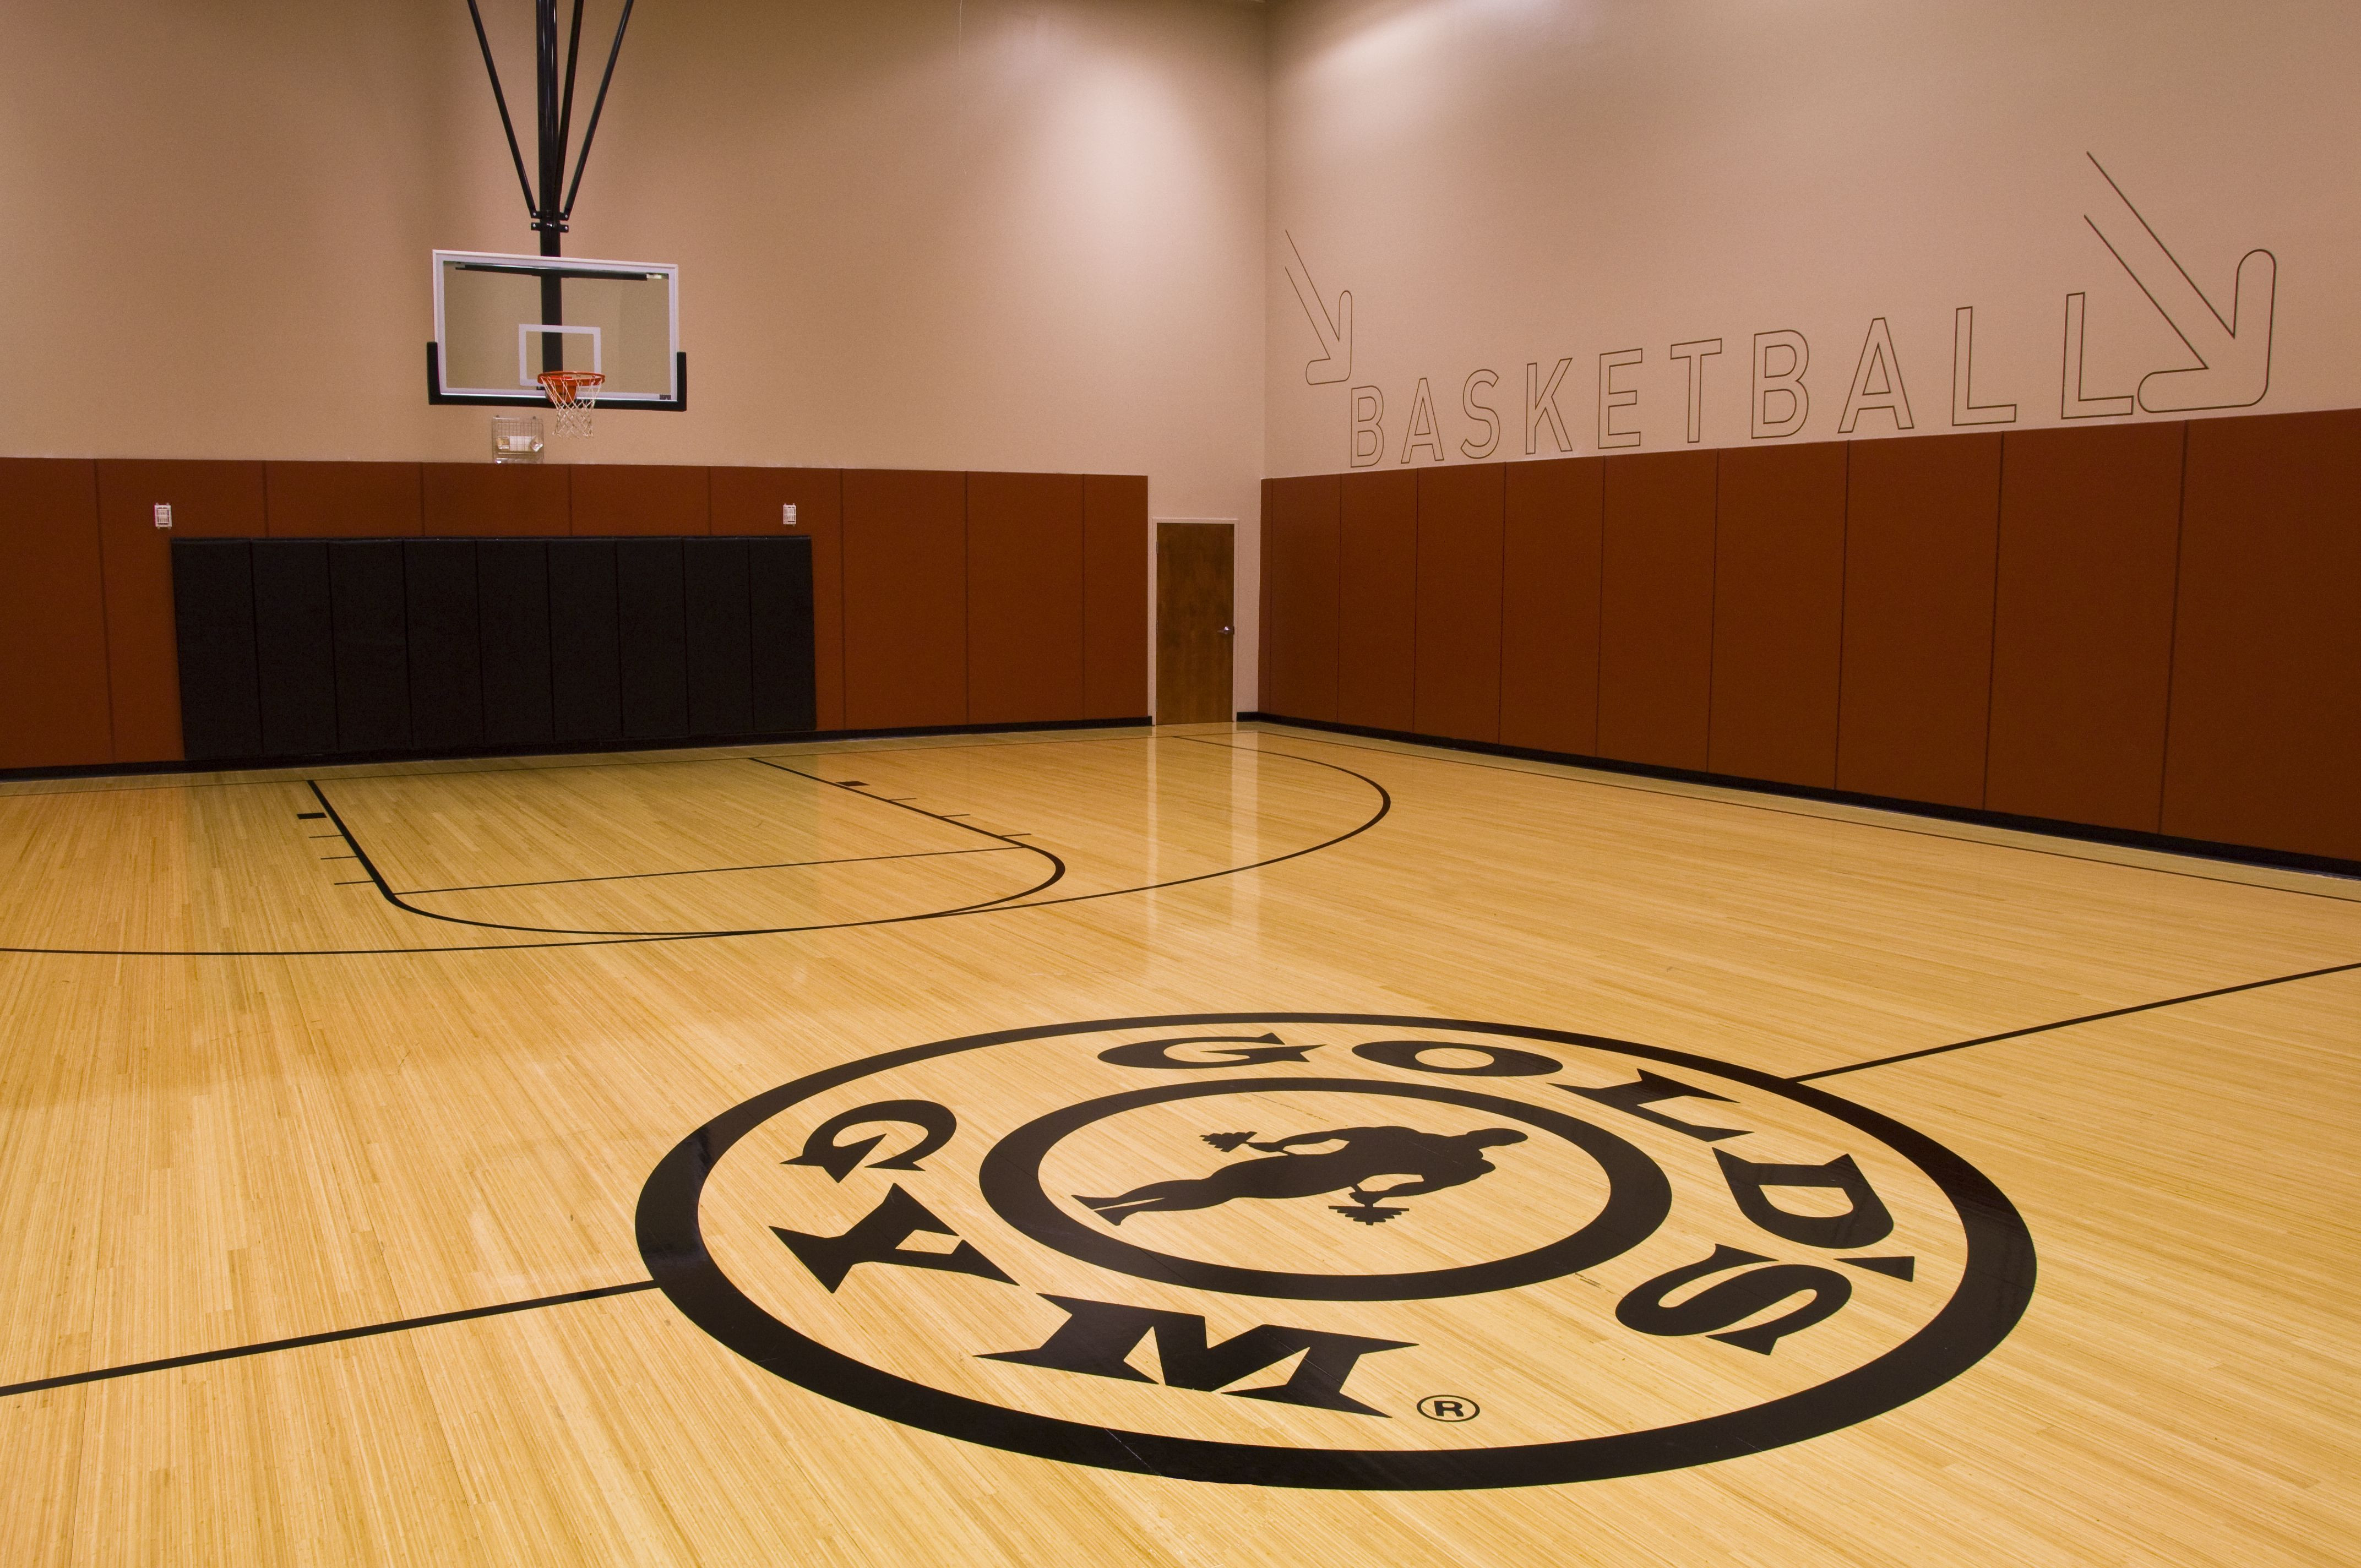 maple hardwood flooring grades of gymboo sport is the ideal replacement for traditional maple sports within gymboo sport is the ideal replacement for traditional maple sports flooring as it touts greater stability a clear grade without the upcharge